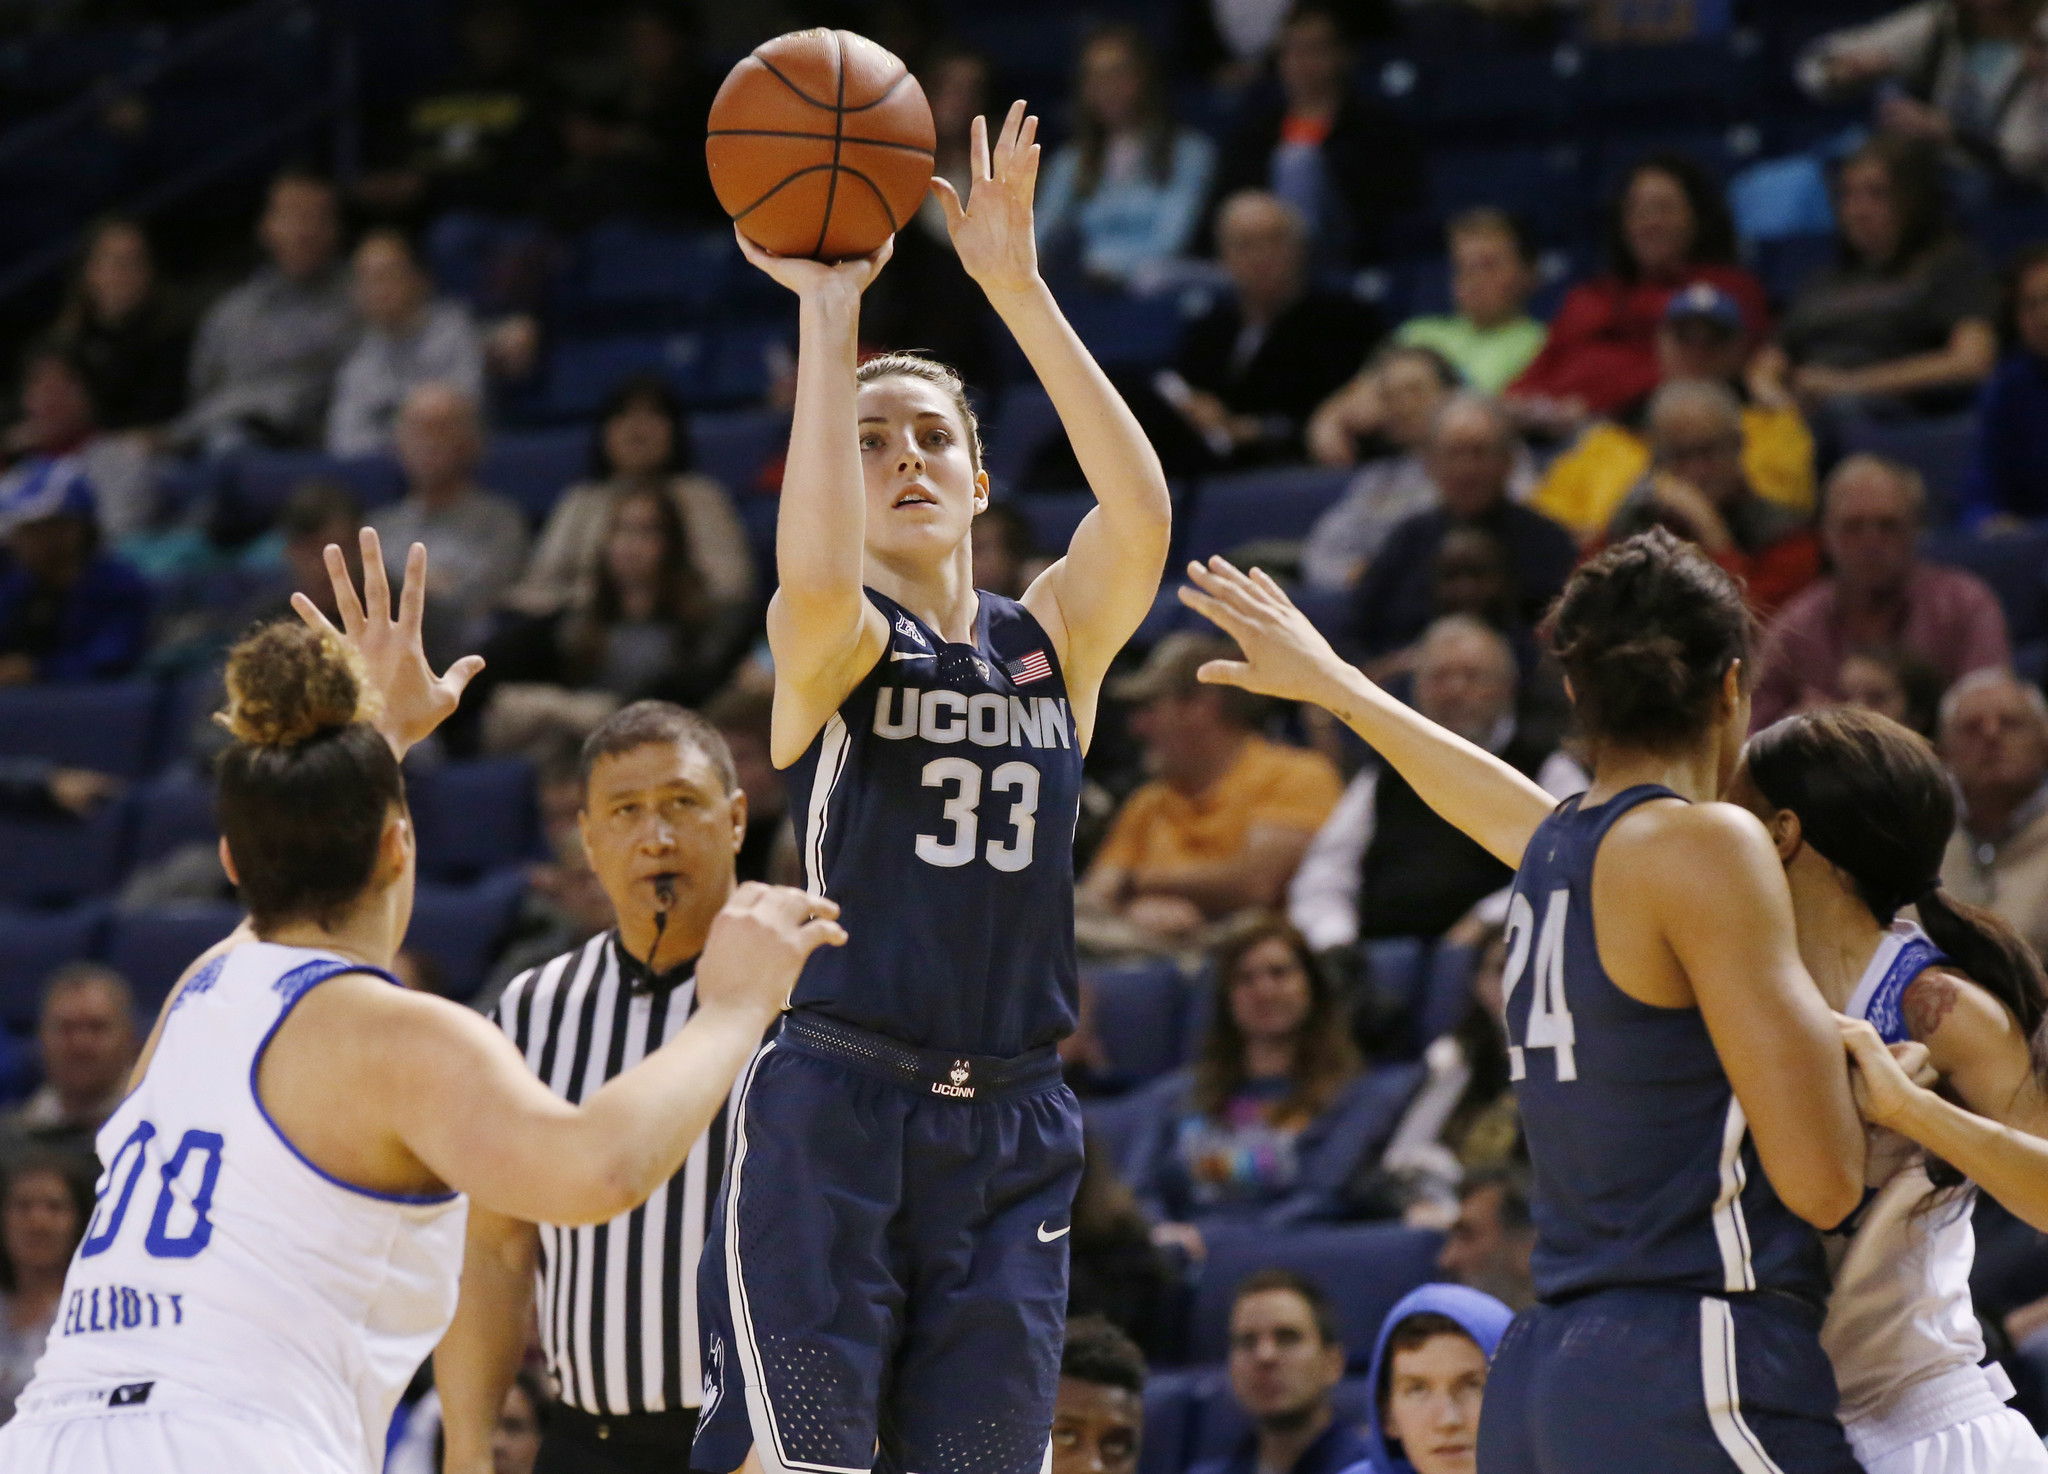 uconn women: just no stopping katie lou; other things learned